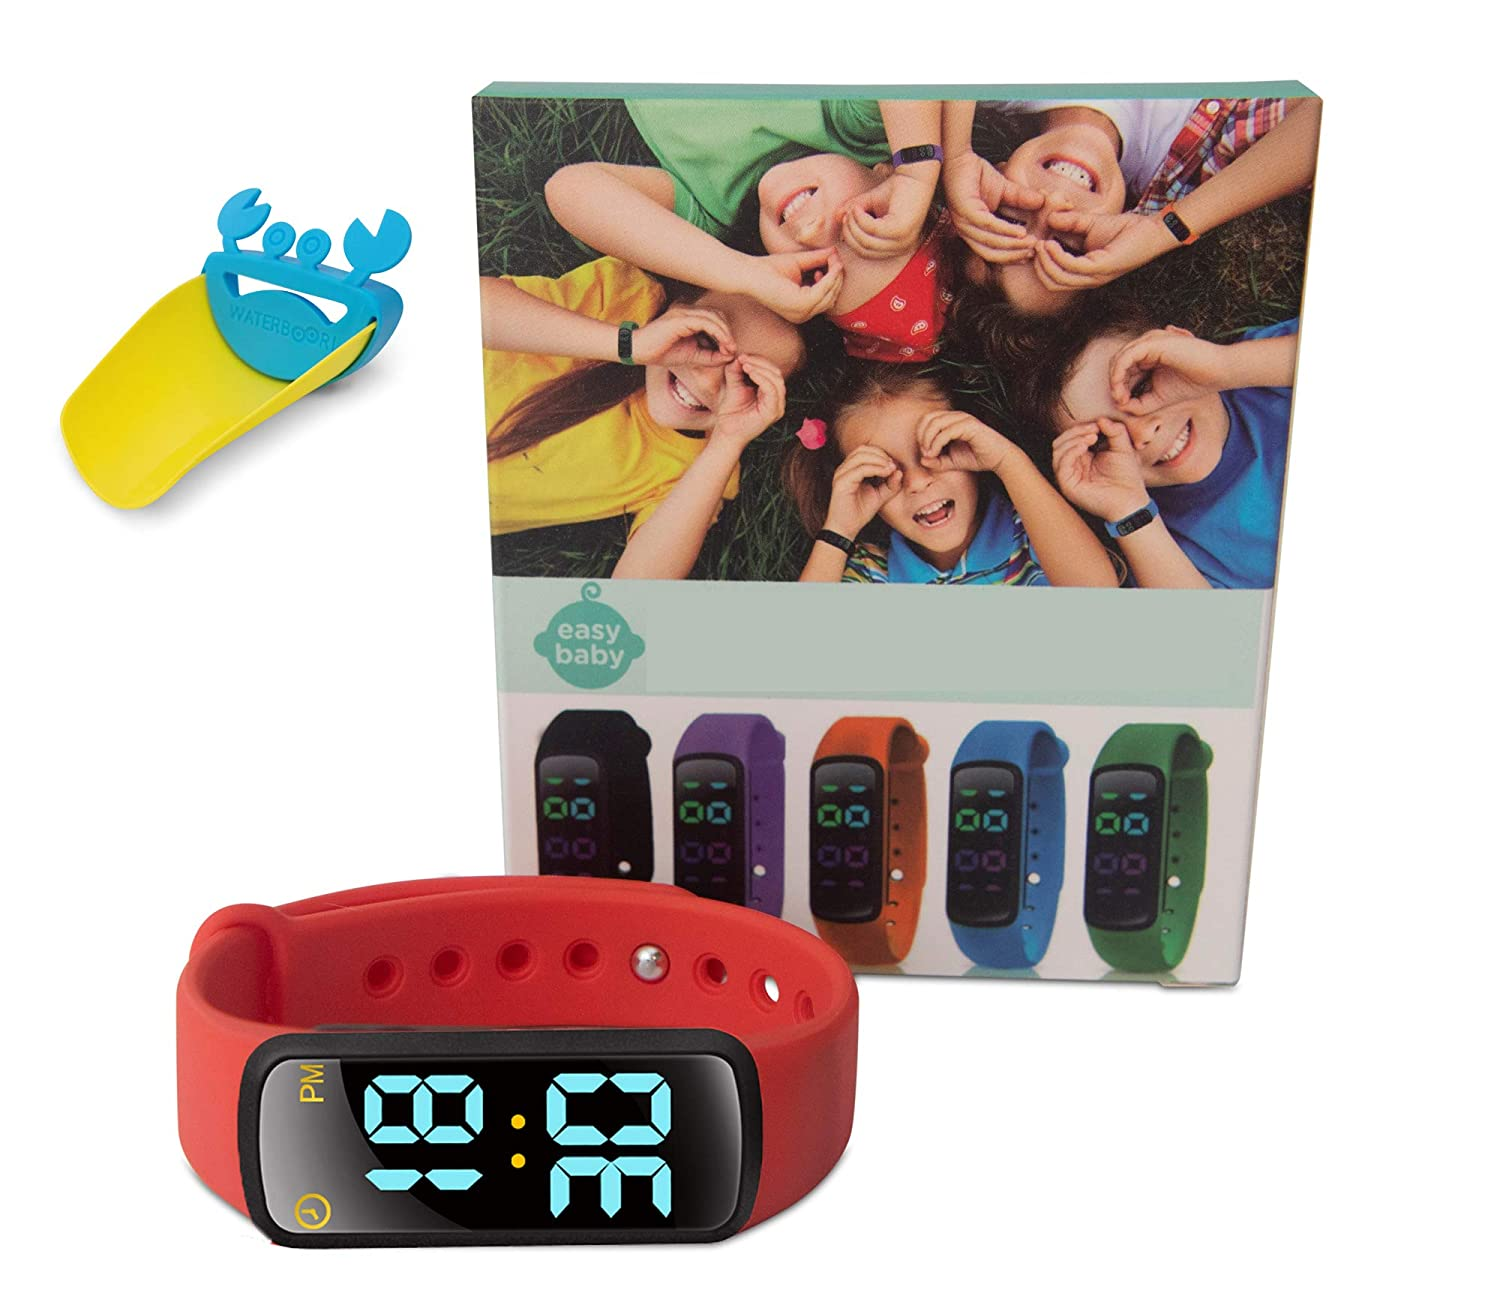 EZ Baby - Toddler Potty Training Watch - Non-Toxic, Waterproof, Rechargeable, Fun and Exciting Potty Training- Boys, Girls- (Red)